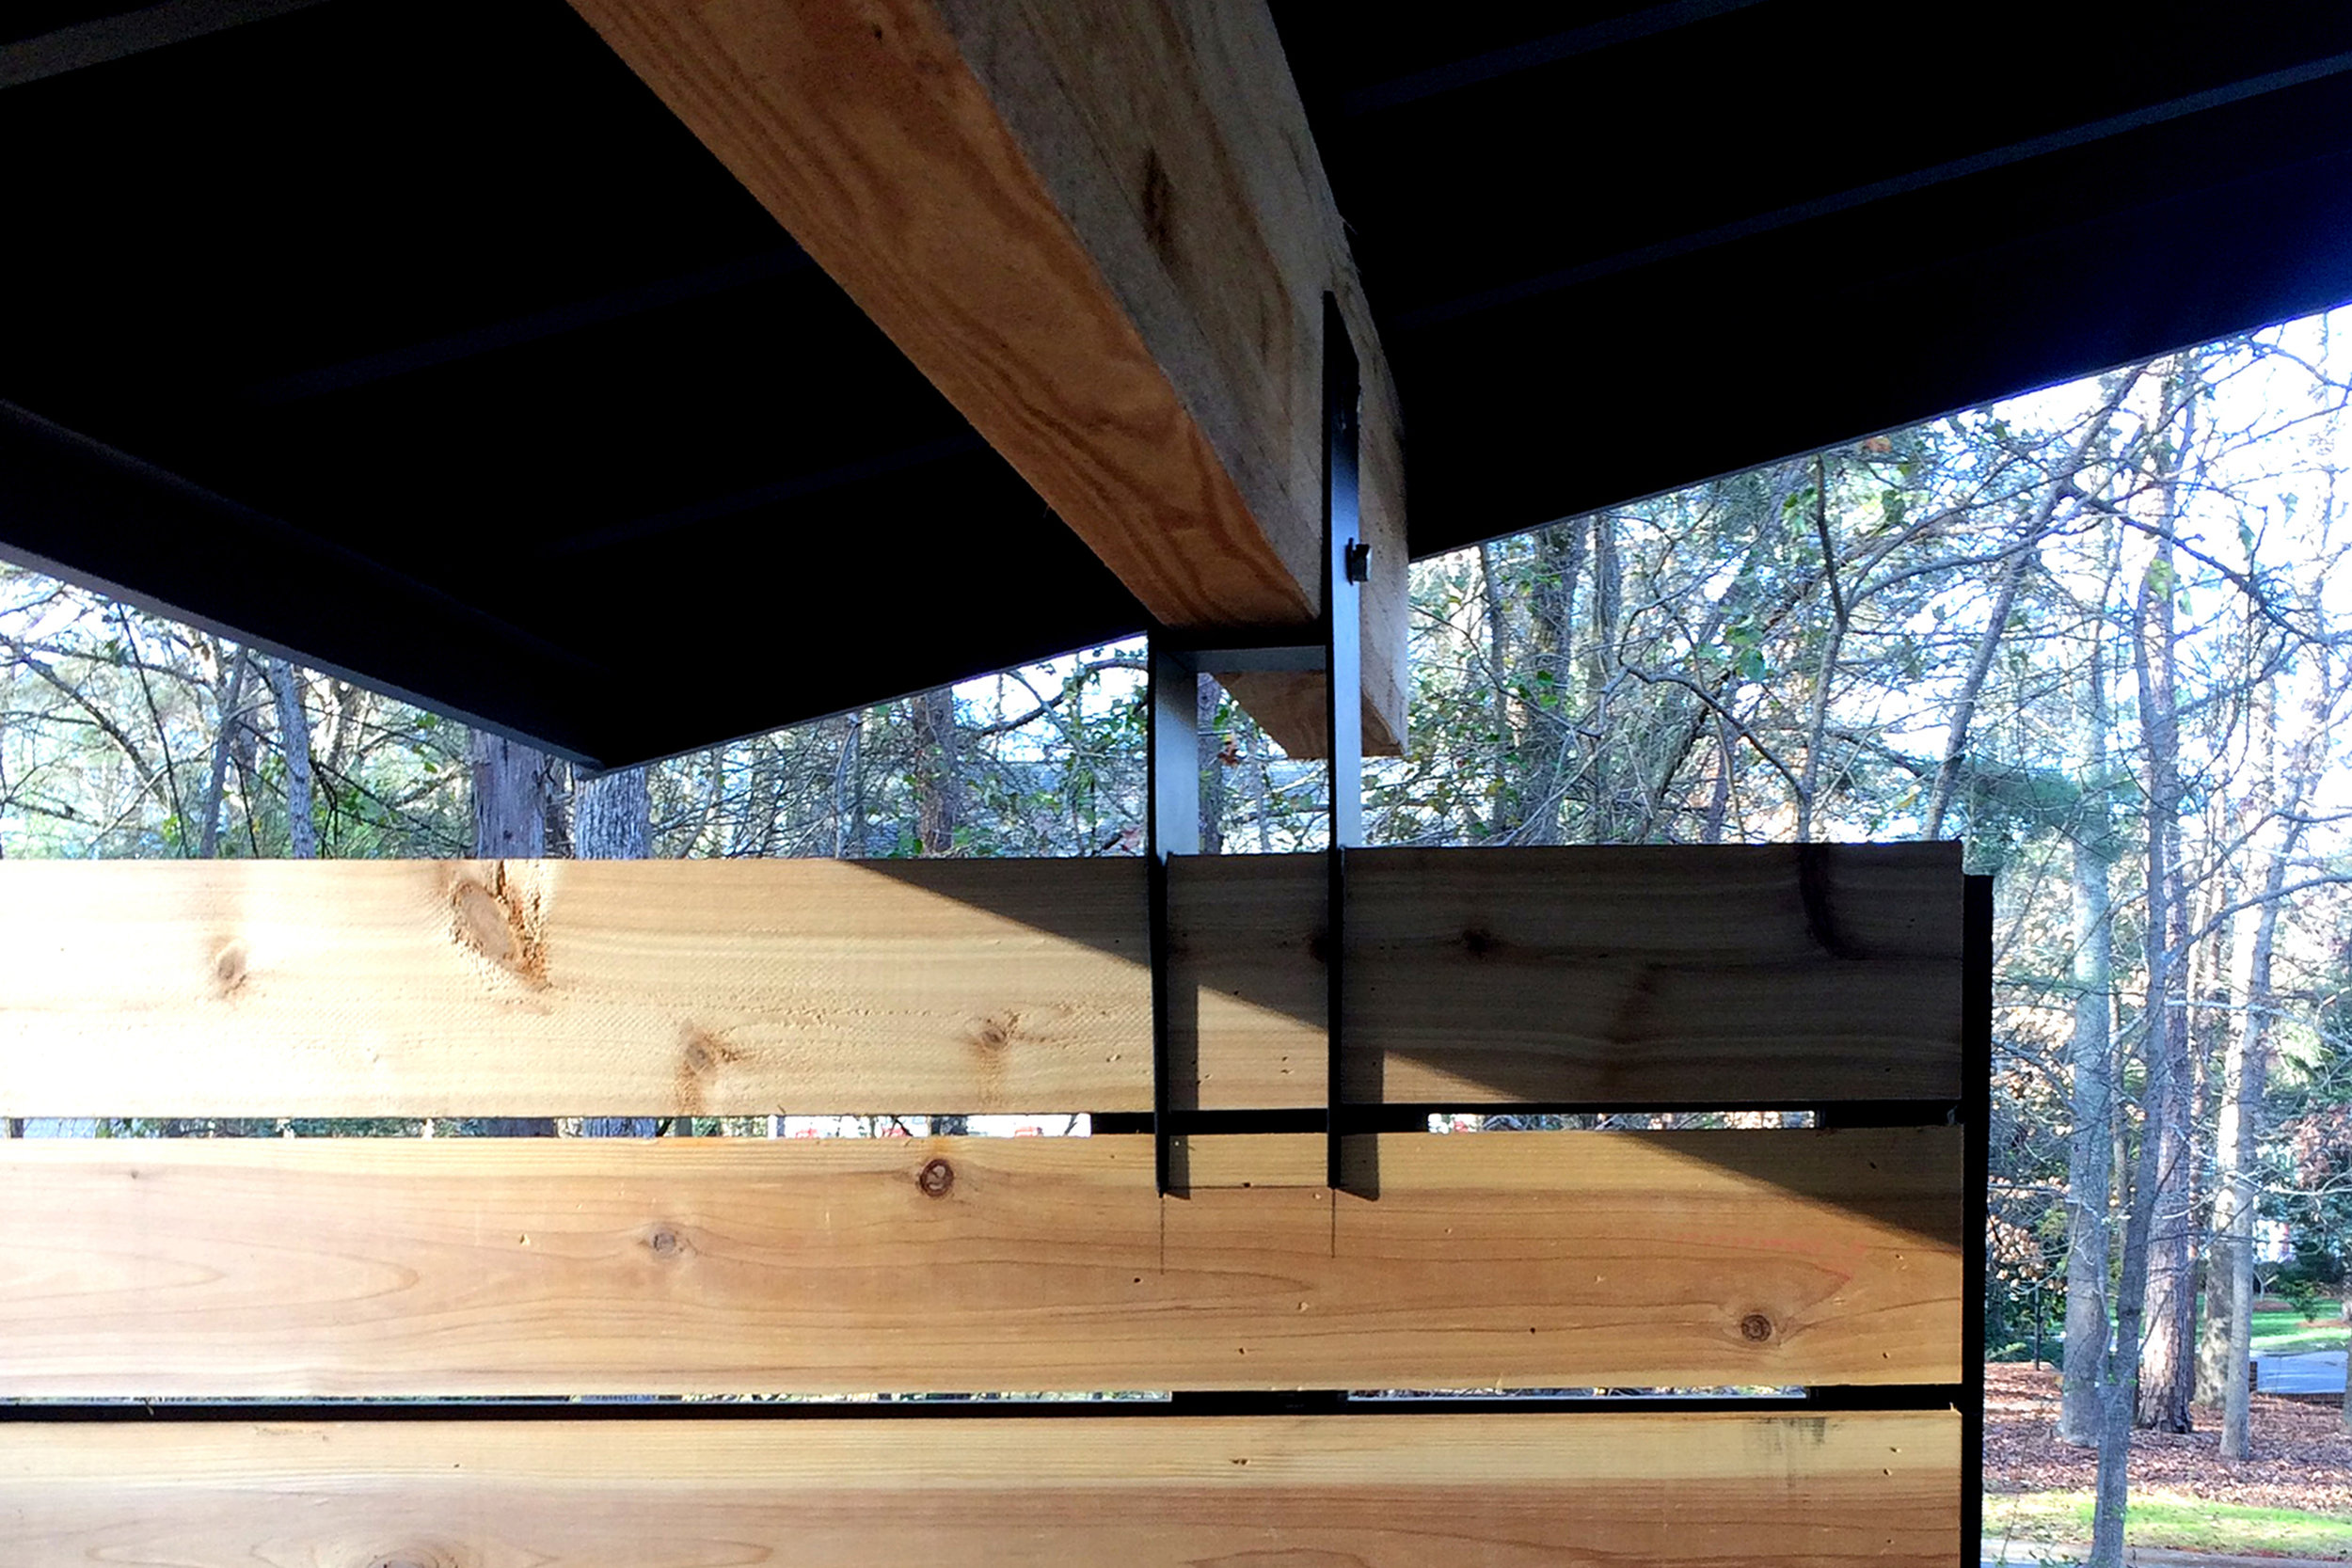 This steel bracket gets to hold up an 18 ft long architectural glulam beam by slicing through a slatted cedar wall. A light and airy touch to a heavy affair in my own home.